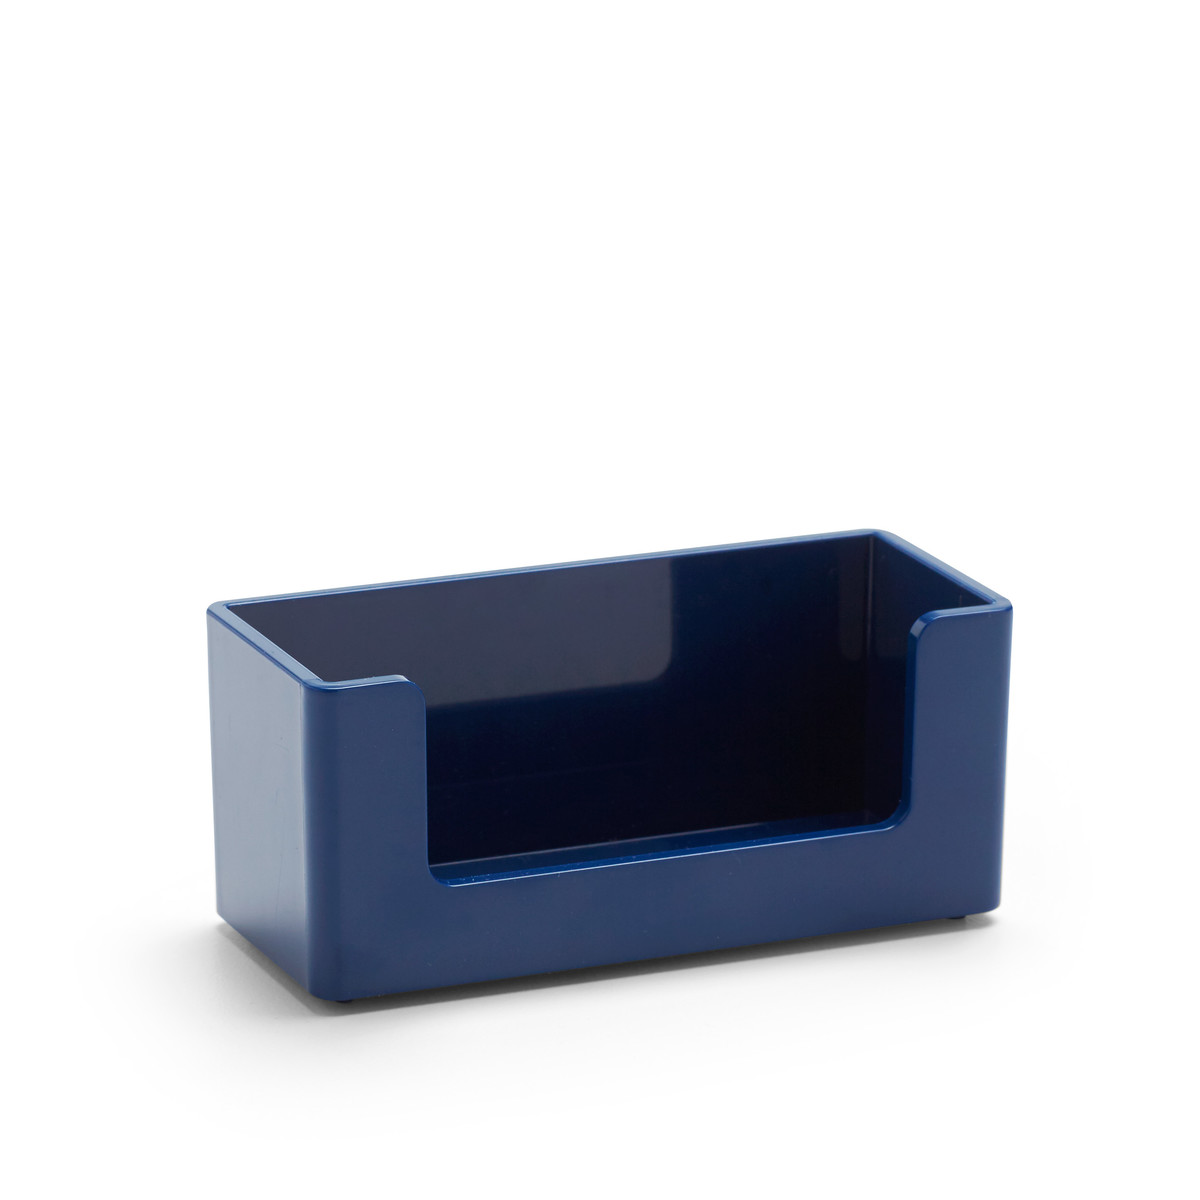 Navy business card holder desk accessories poppin images navy business card colourmoves